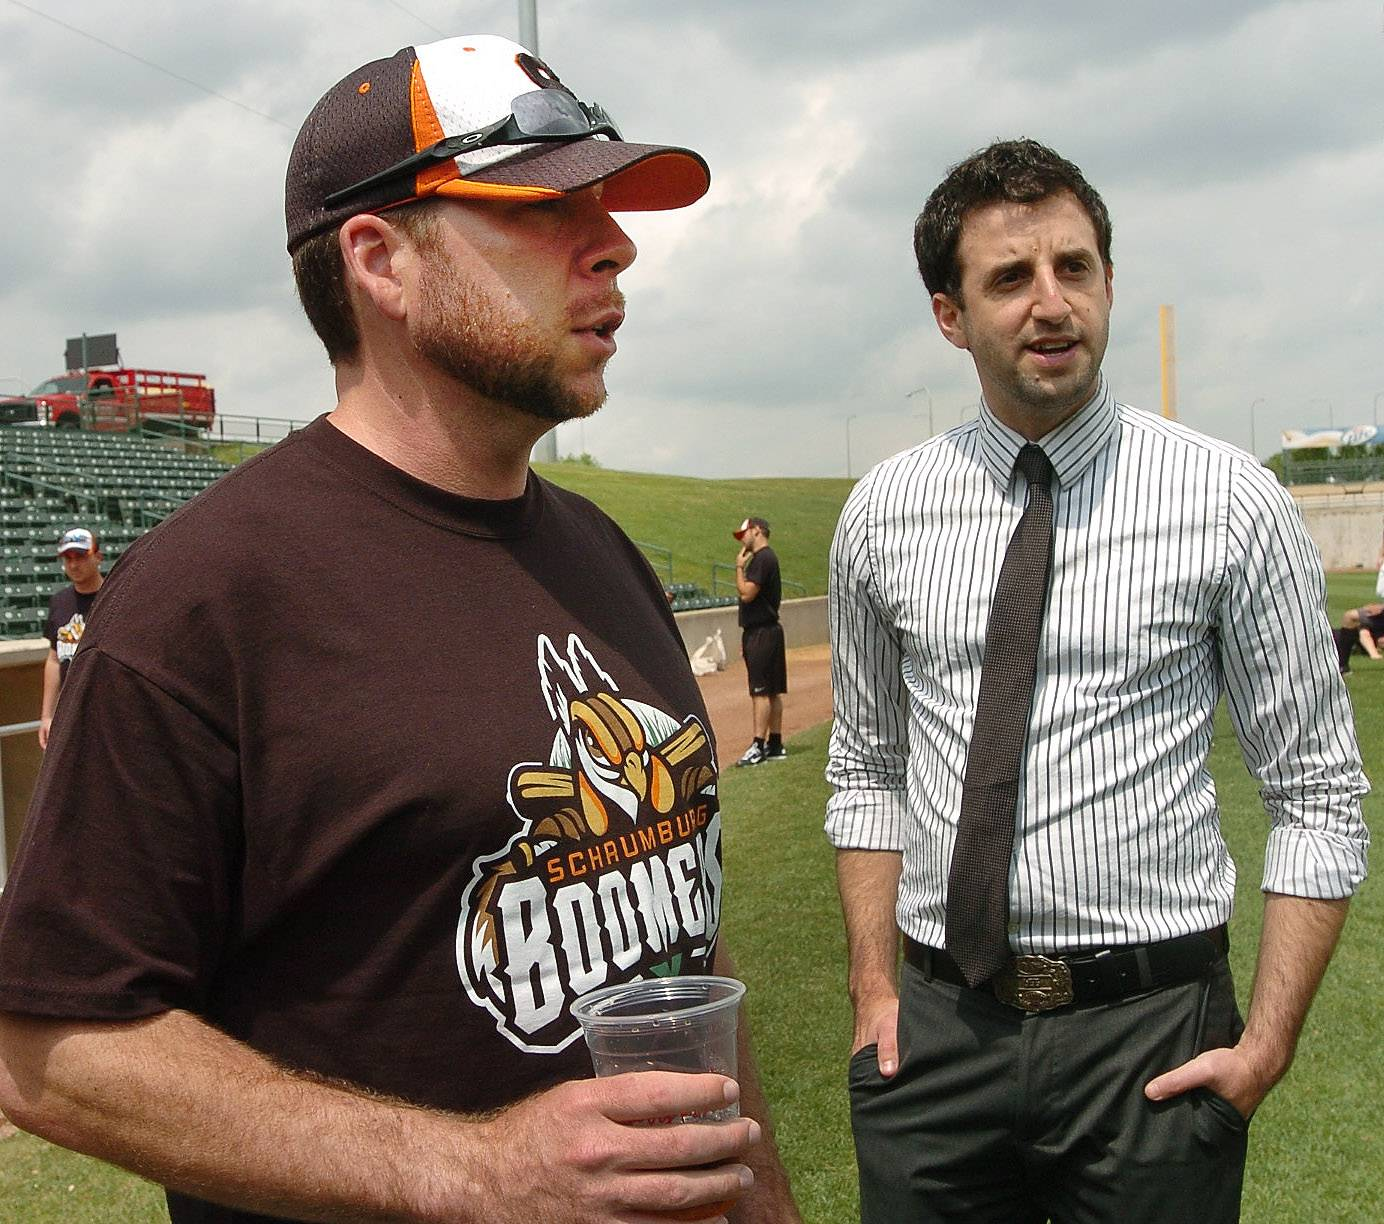 Schaumburg Boomers manager Jamie Bennett, left, with team president and GM Andy Viano, believes this year's club has enough offensive potential to put a lot of pressure on opposing teams.